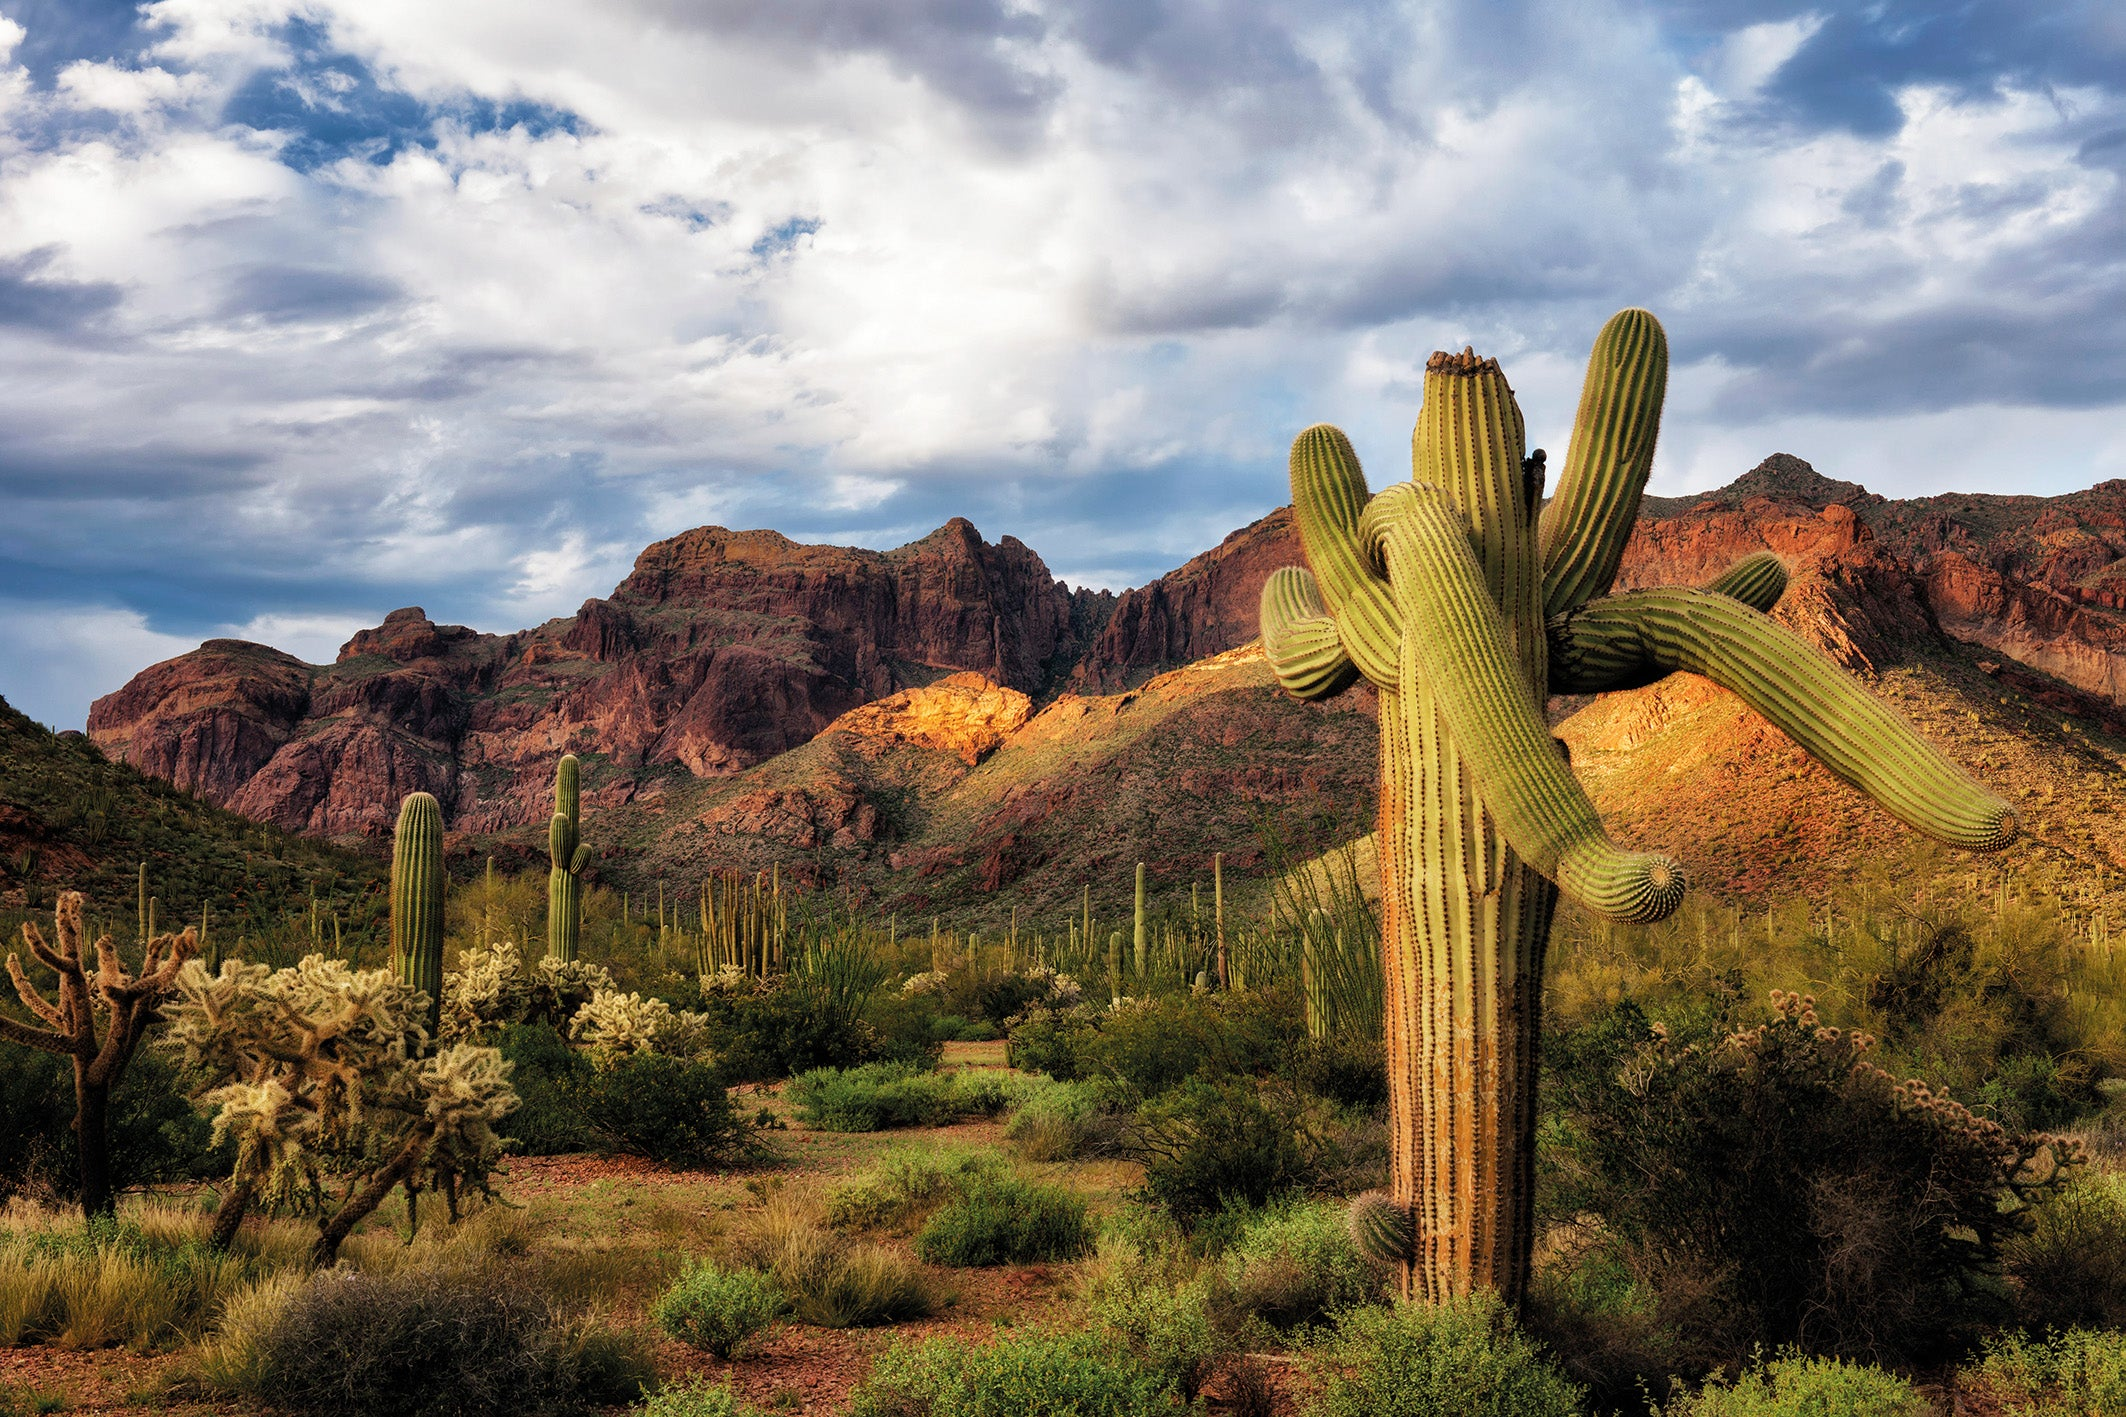 Arizona's Organ Pipe Cactus National Monument is beautiful and unique – and being irrevocably degraded in the name of Trump's wall